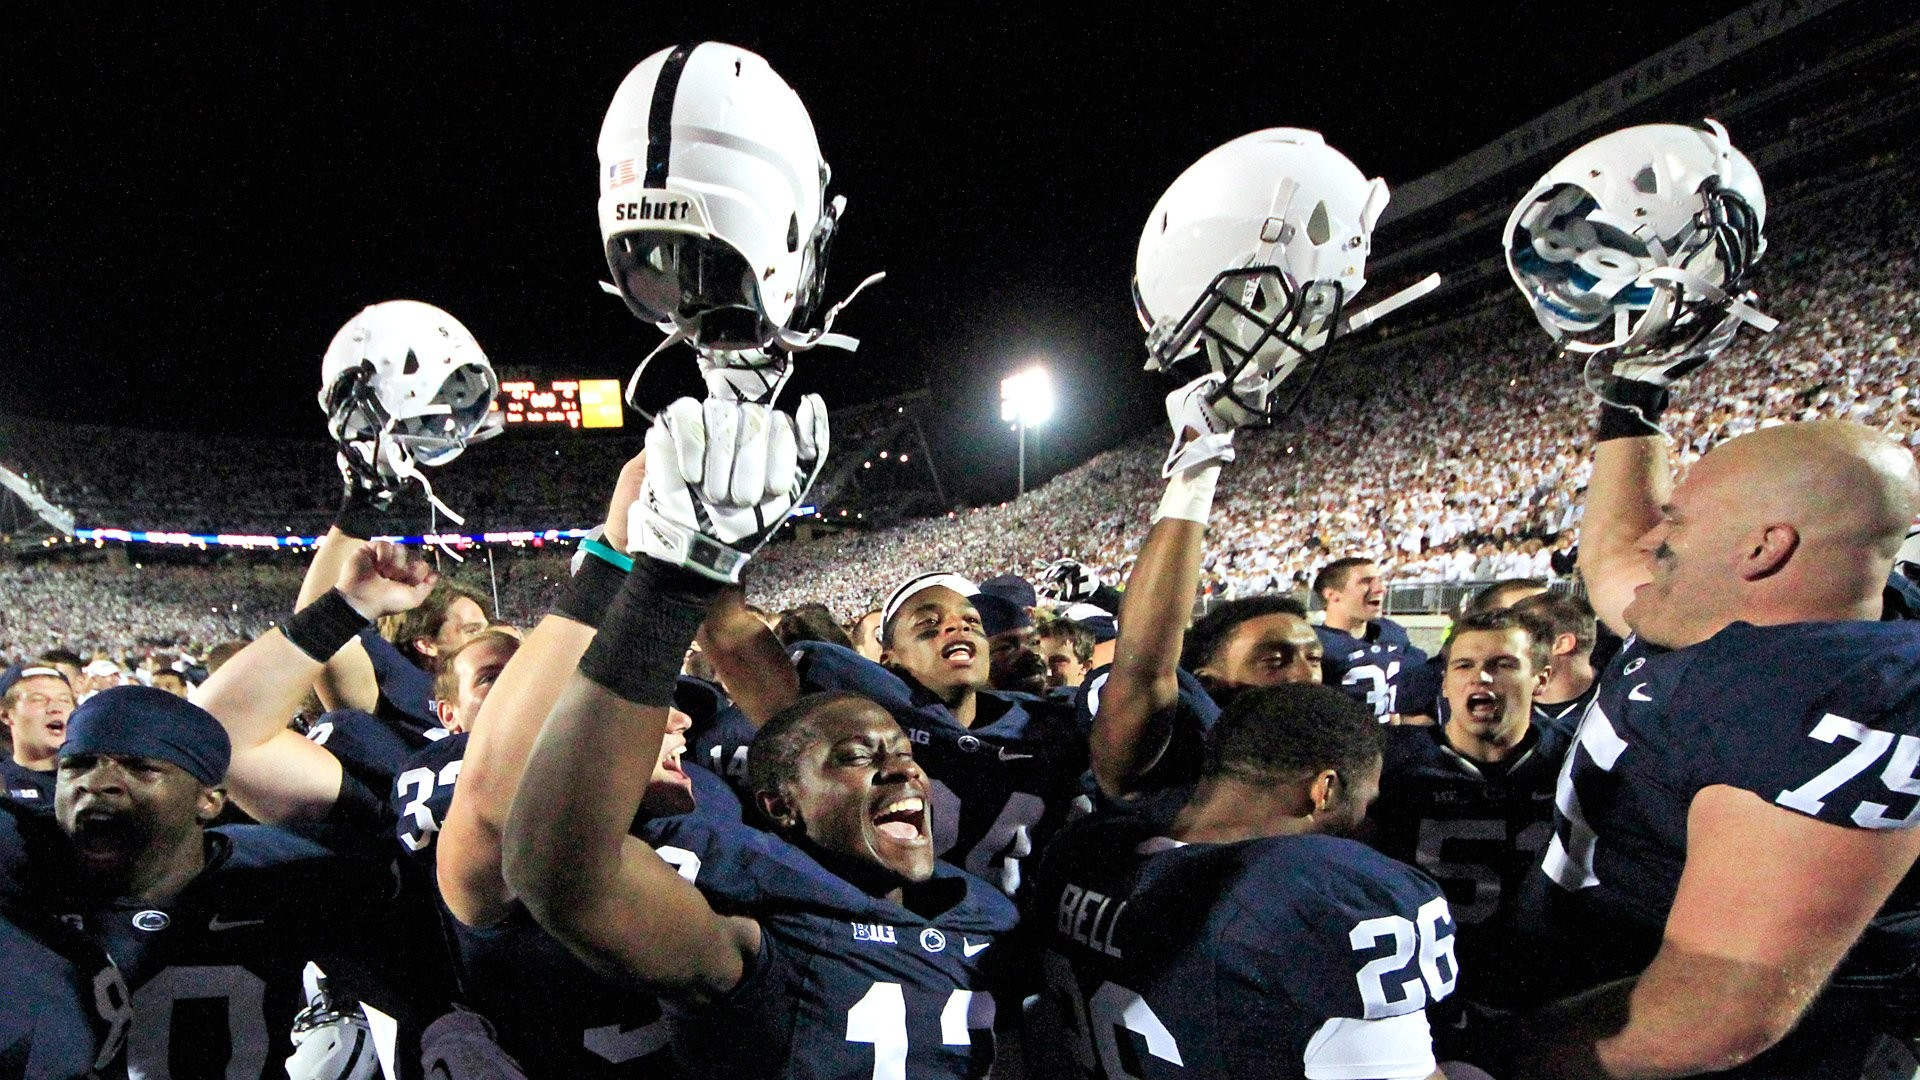 GOPSUSPORTScom Official Athletic Site of Penn State · penn state football iphone  wallpaper …